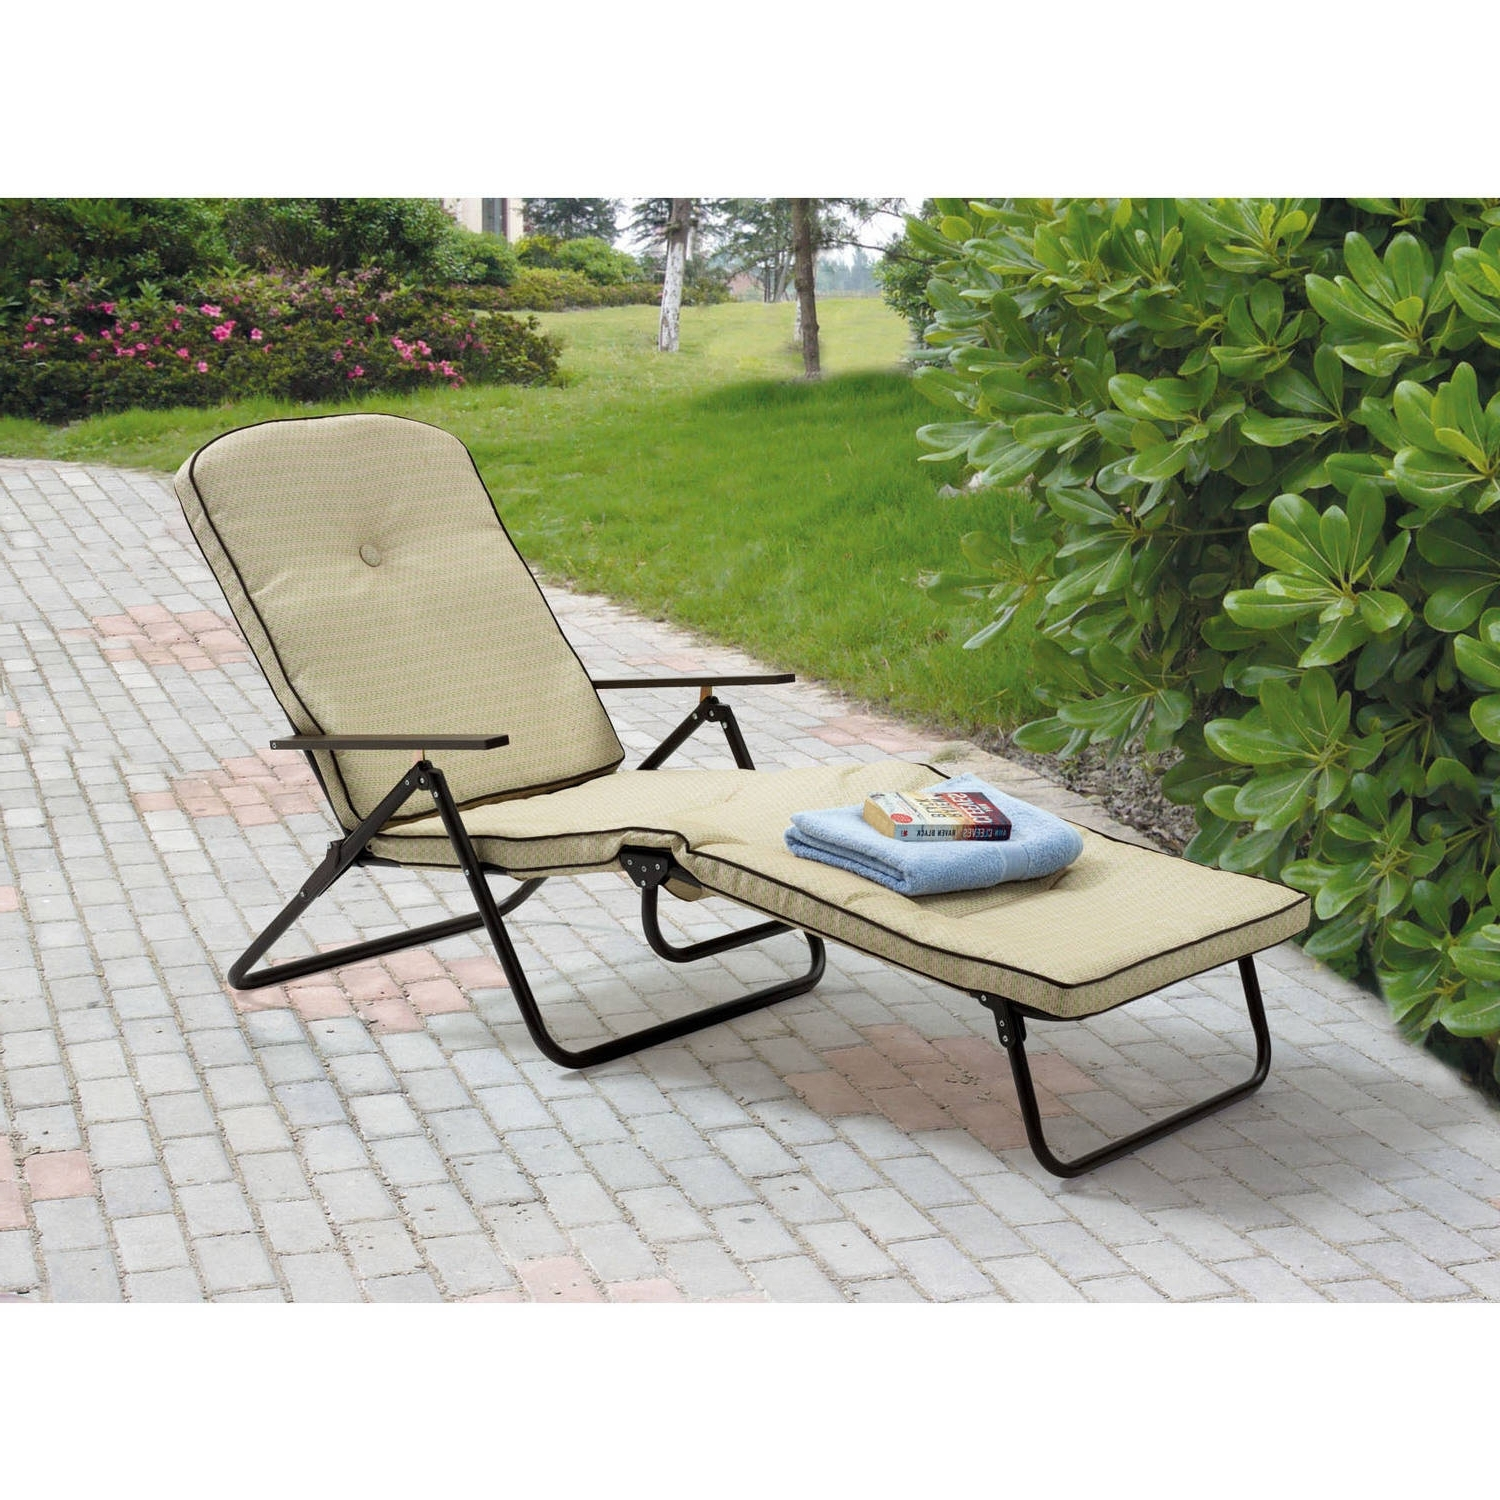 Mainstays Sand Dune Outdoor Padded Folding Chaise Lounge, Tan Within Trendy Walmart Outdoor Chaise Lounges (View 4 of 15)